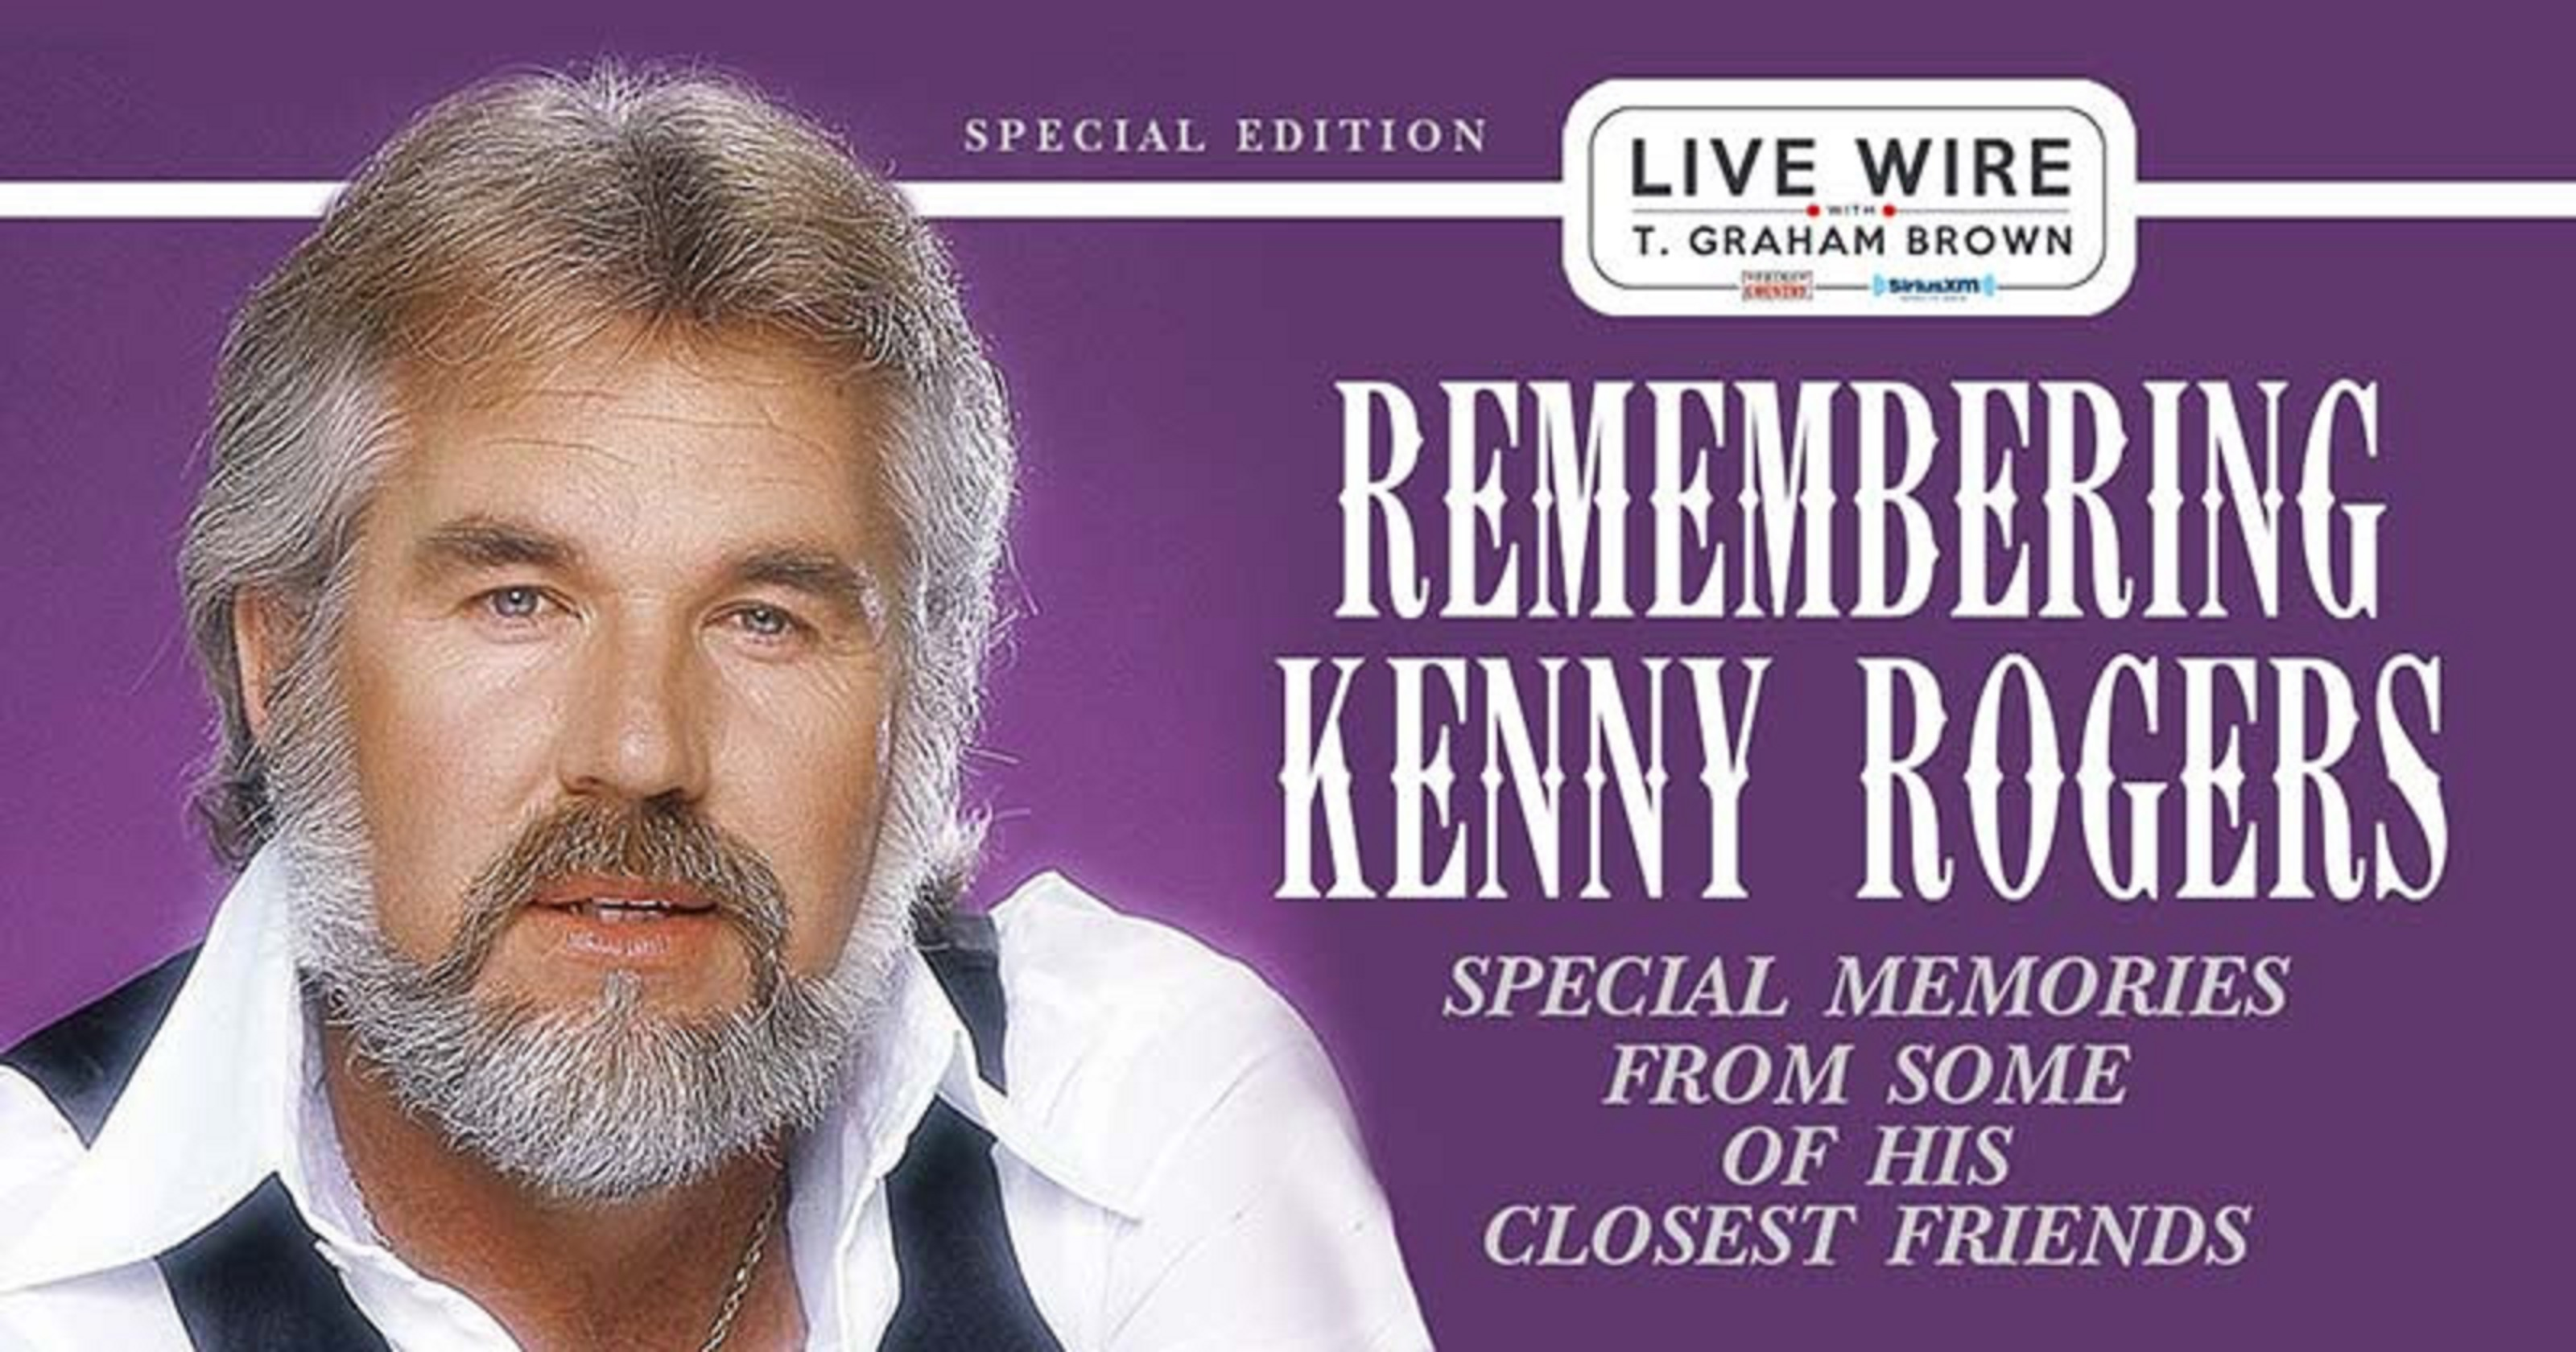 'Remembering Kenny Rogers' Special Hosted By T. Graham Brown Set To Air On SiriusXM's Prime Country Channel 58